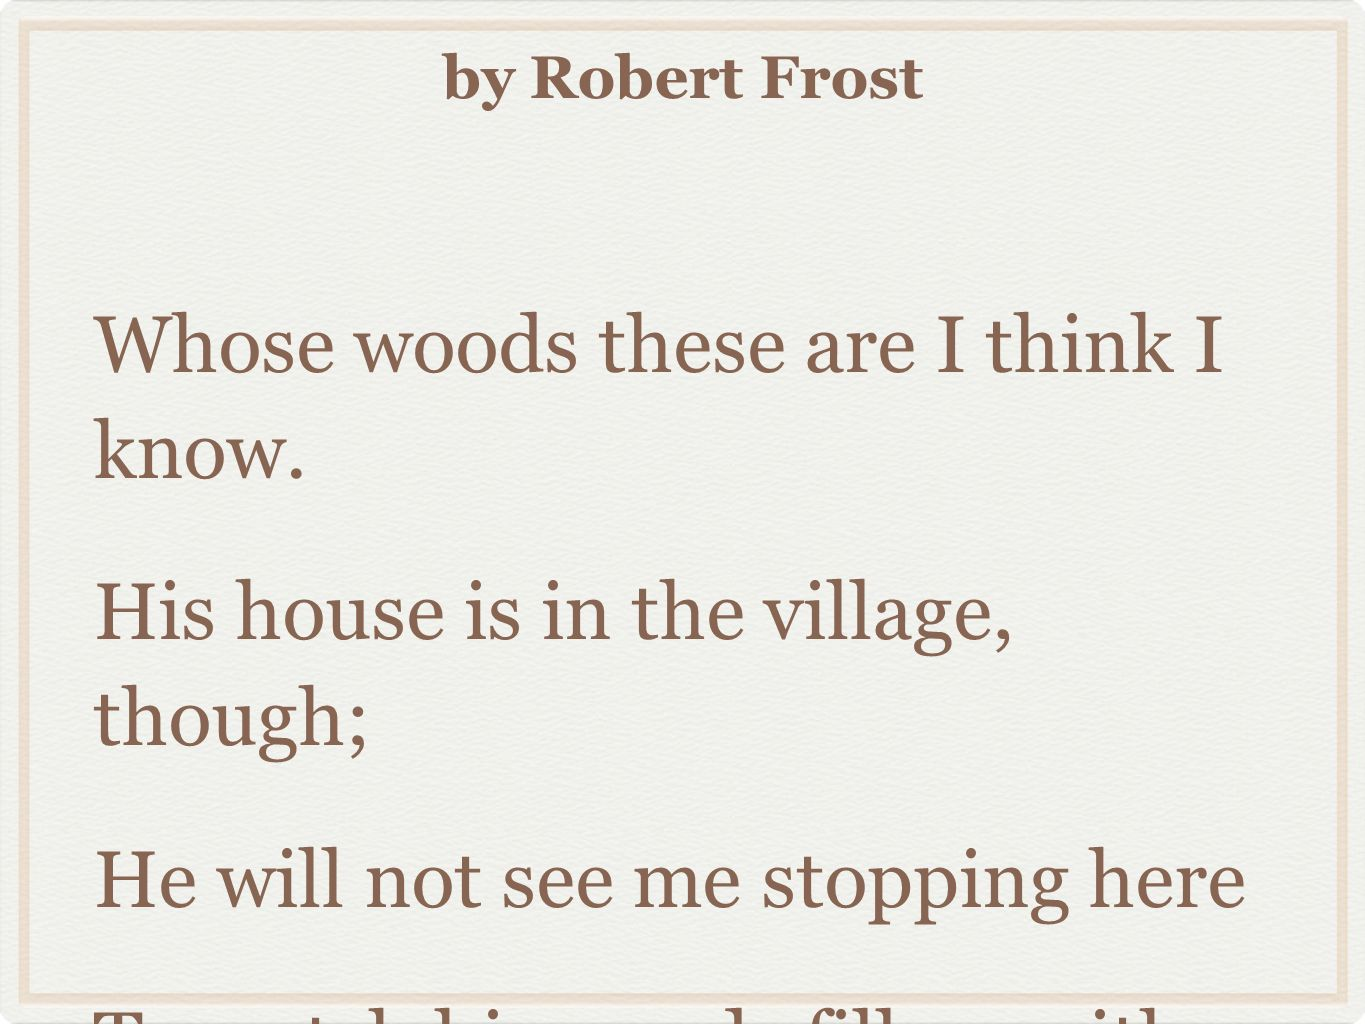 write an essay on the characteristics of robert frosts poetry The tools you need to write a quality essay or term paper essays related to design - by robert frost 1 the poetry of robert frost is often tinged with.